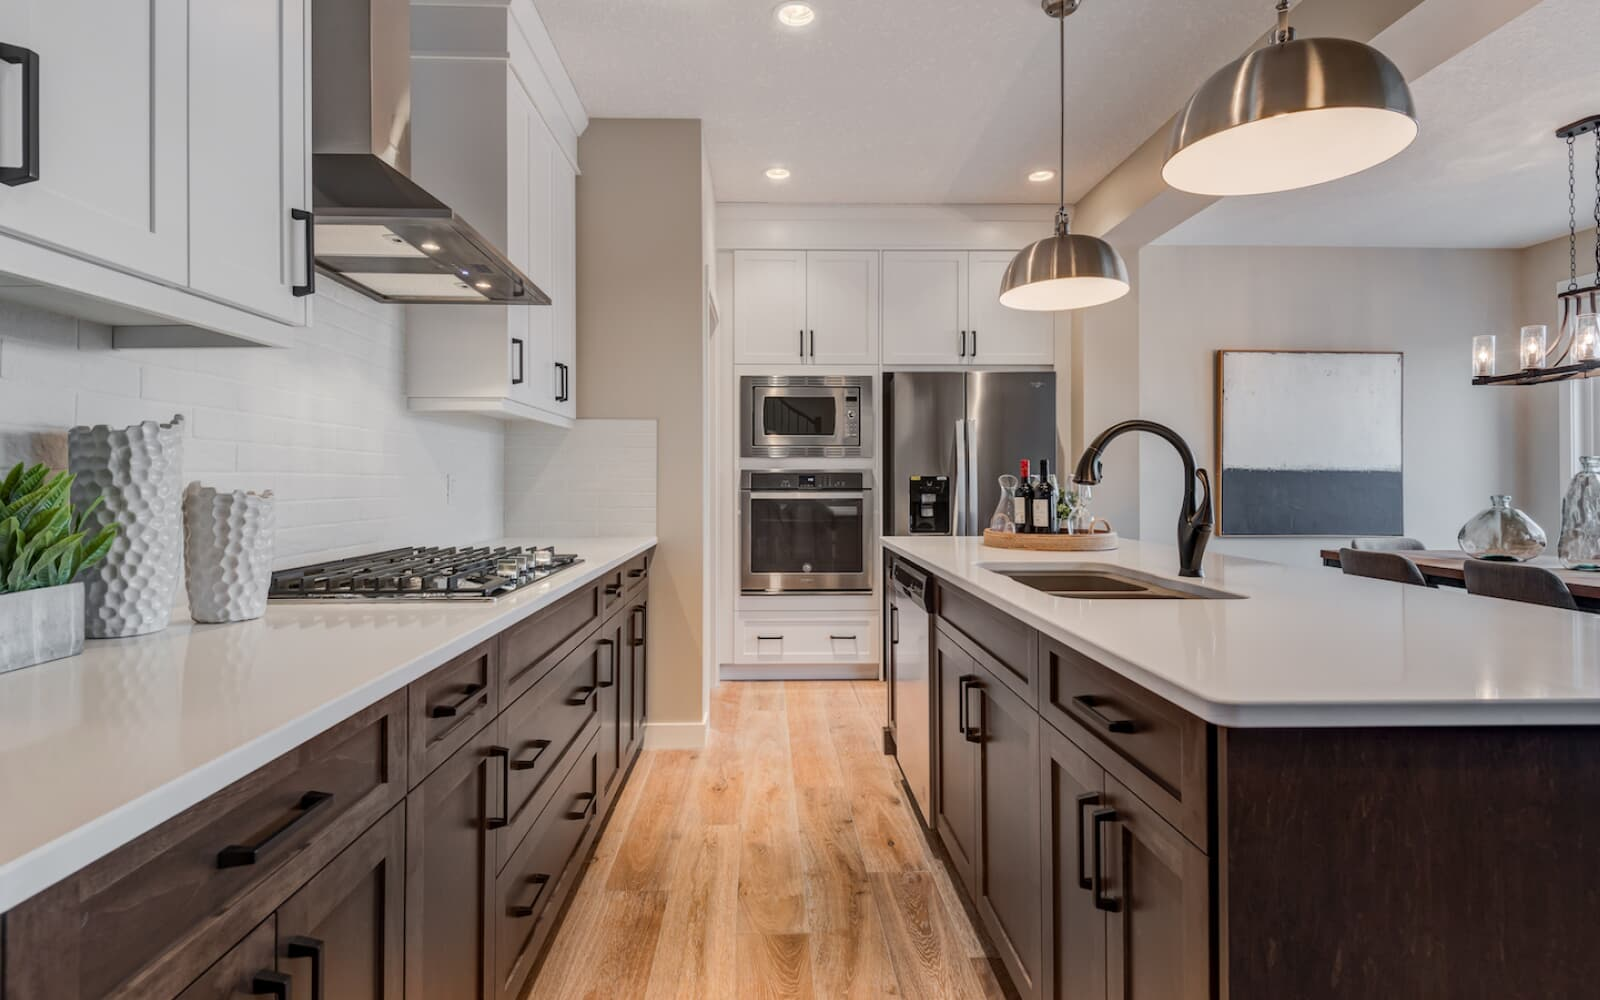 kitchen-siena-west-grove-calgary-alberta